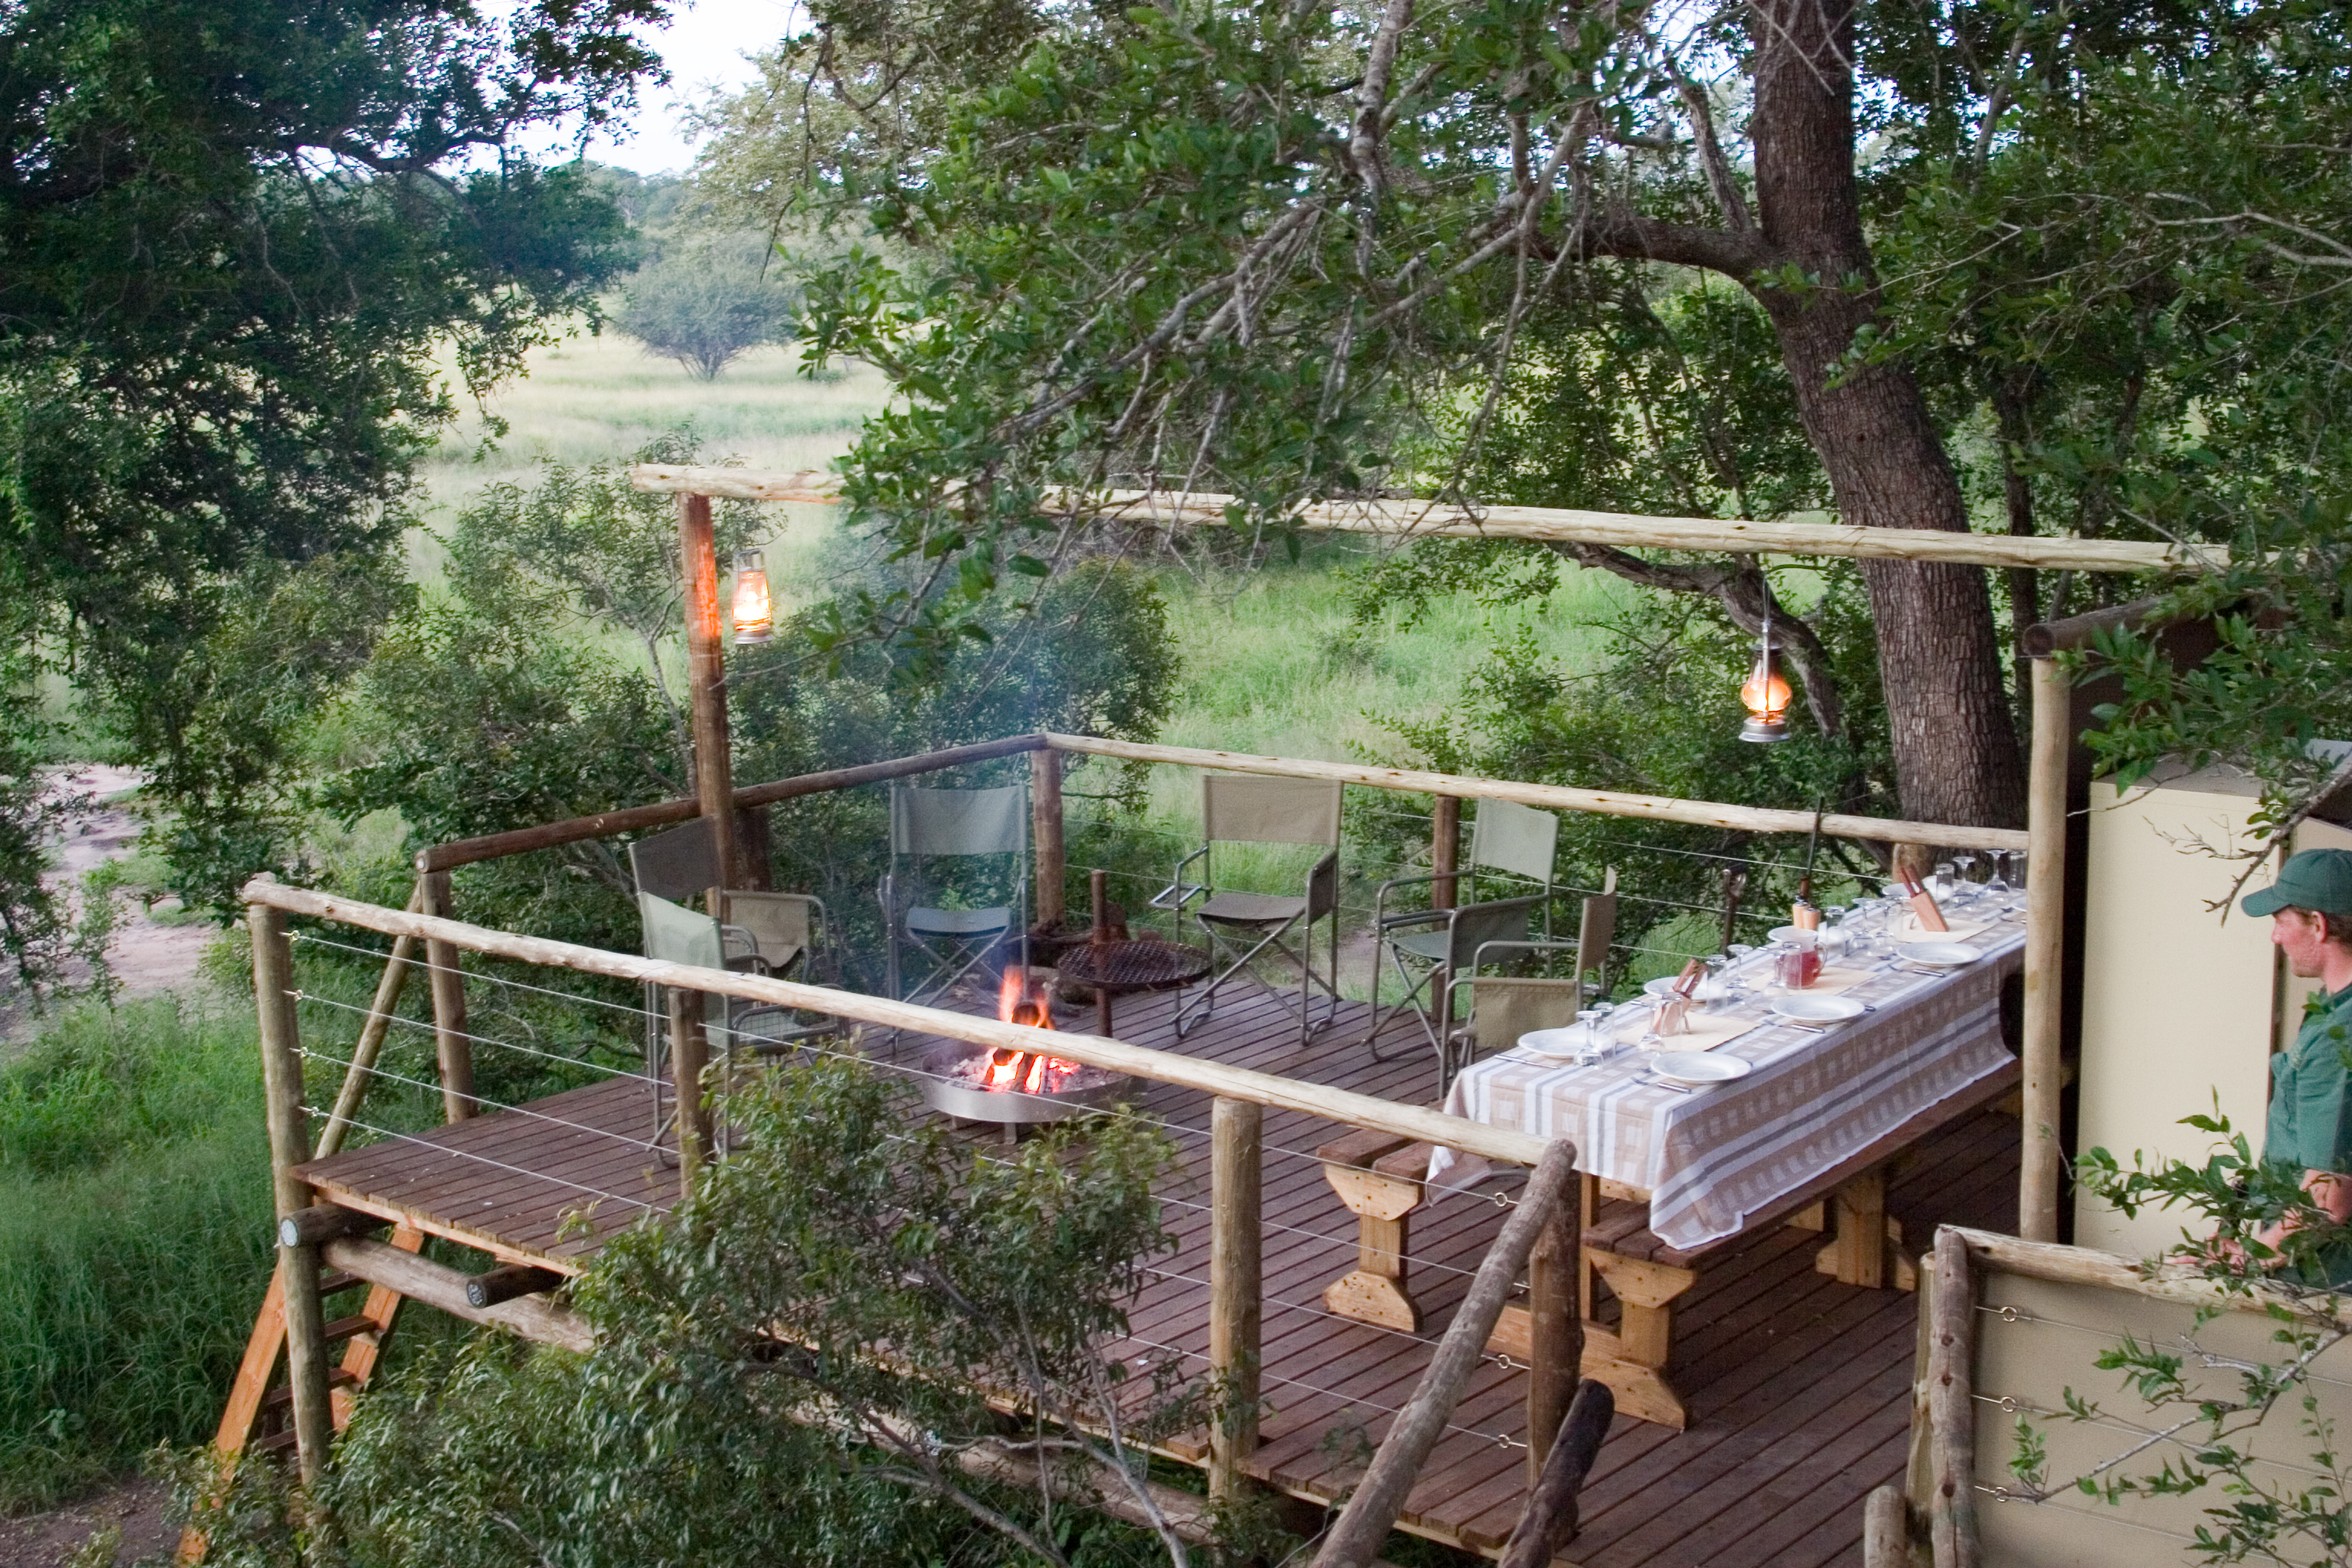 Sleepout dining from Rhino Walking Safaris in Kruger National Park